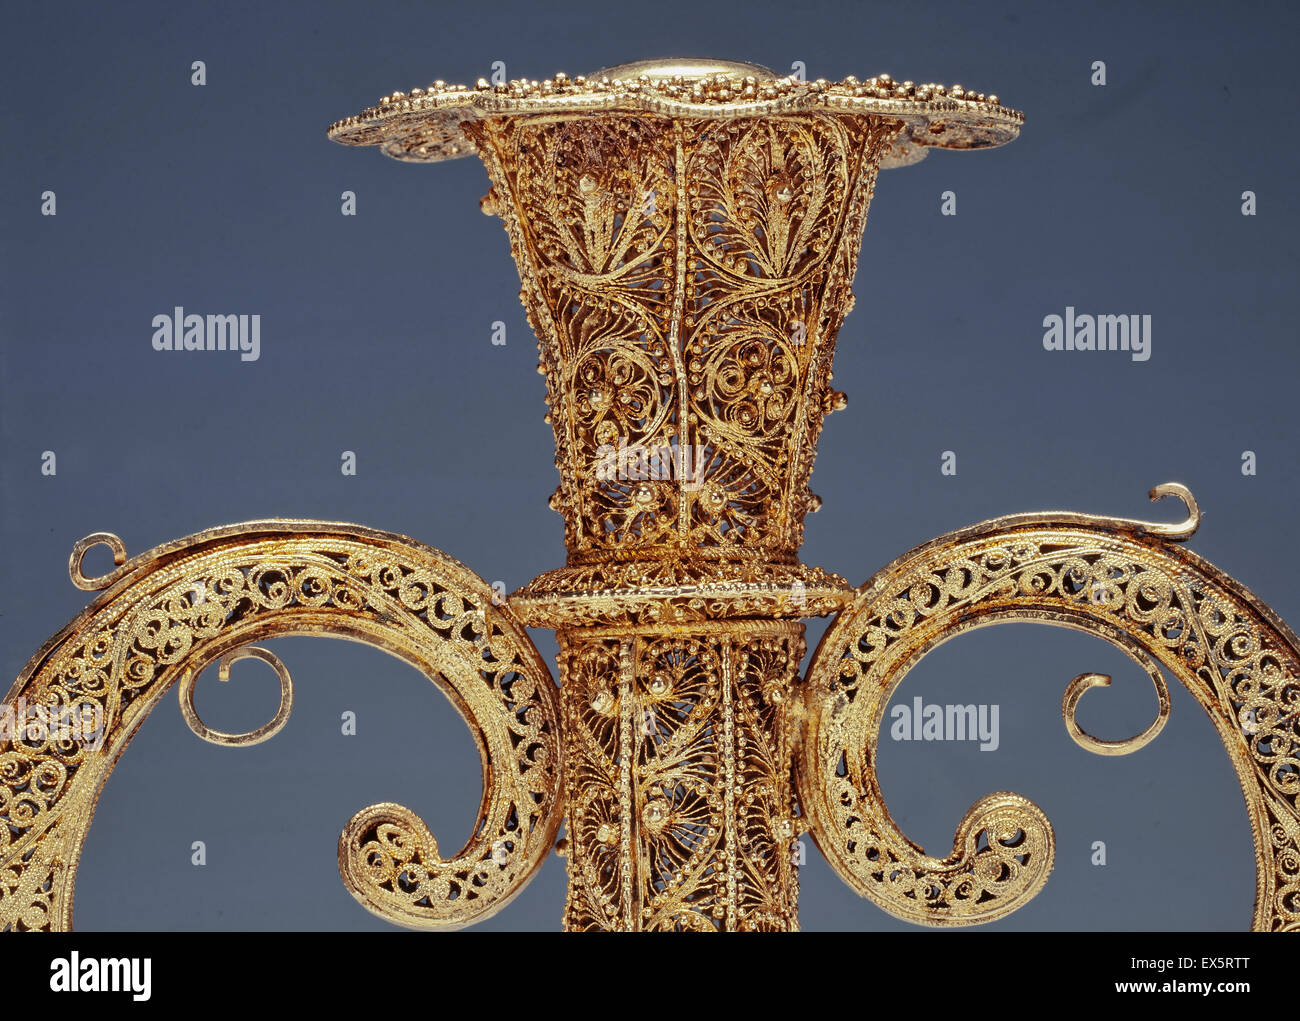 little masterpiece of art in golden or silver filigree - Stock Image